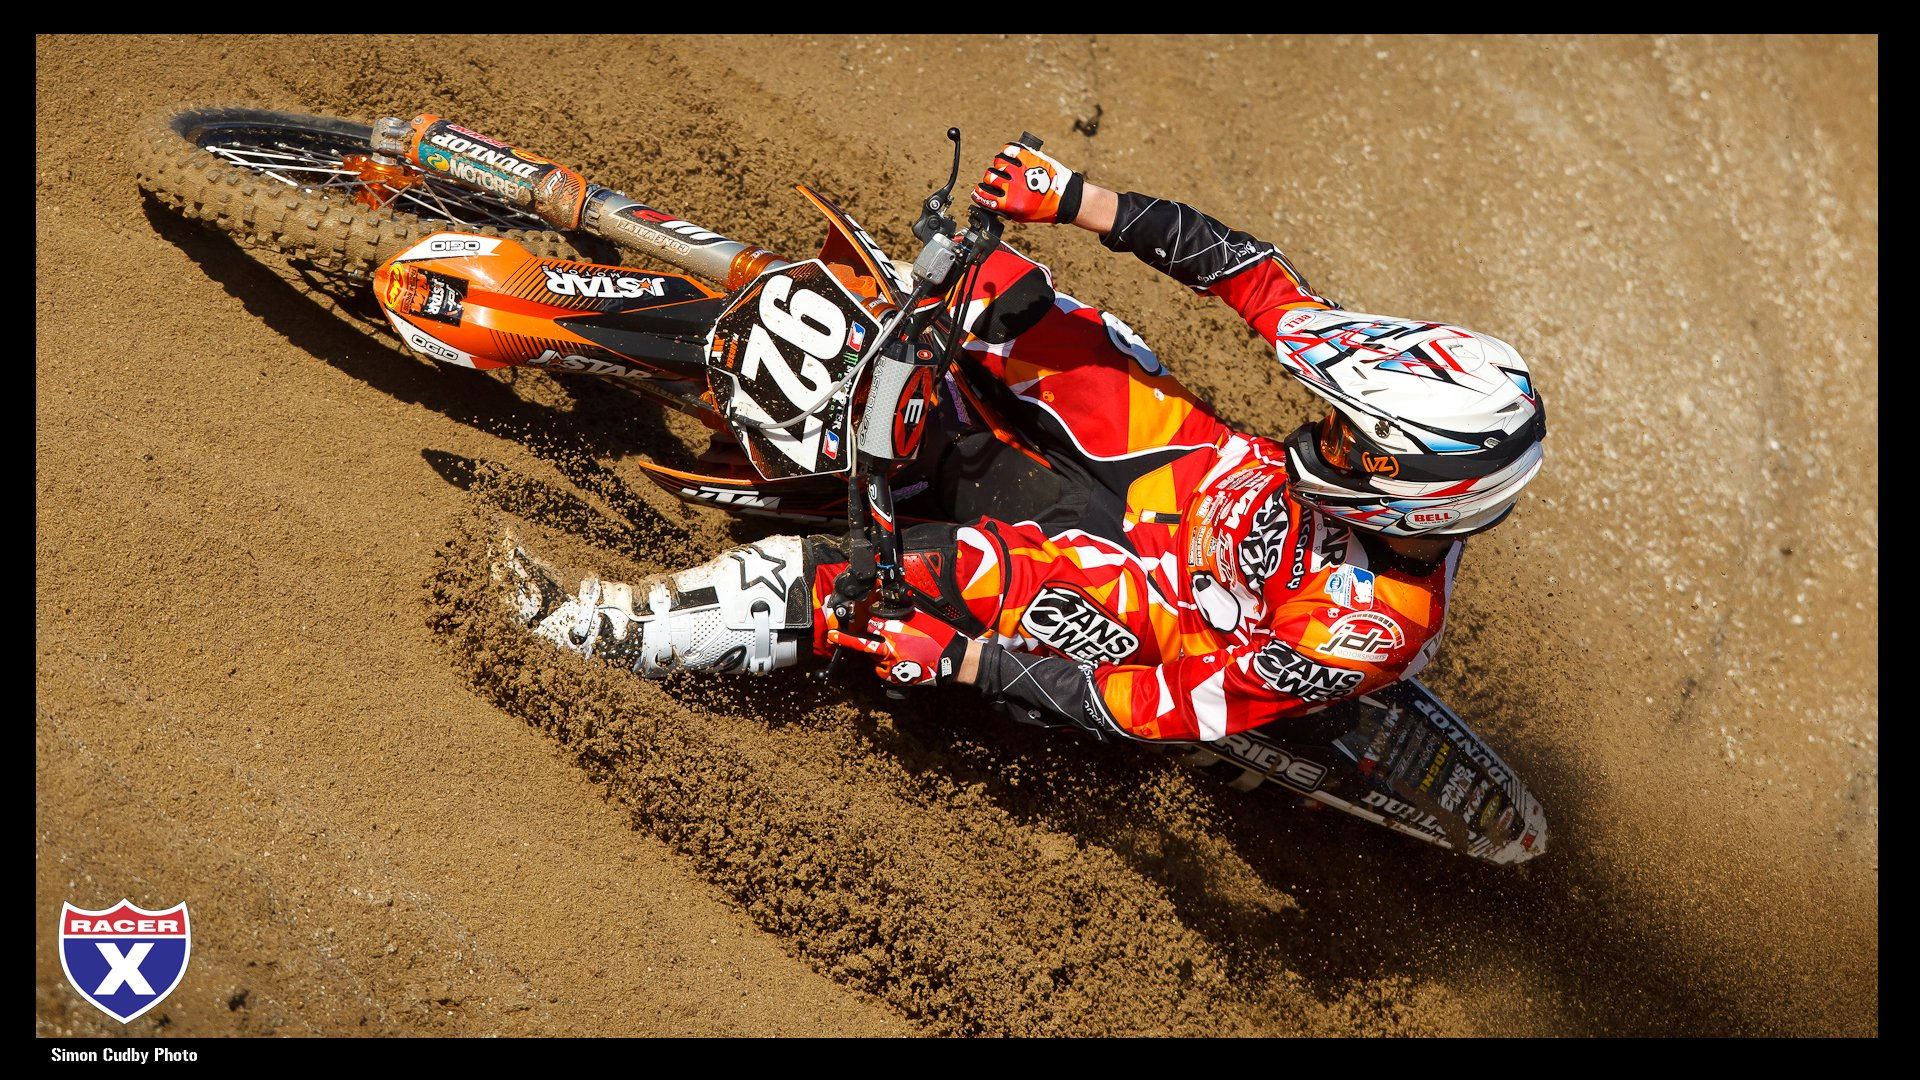 KTM Motocross Offroad Wallpaper HD 817